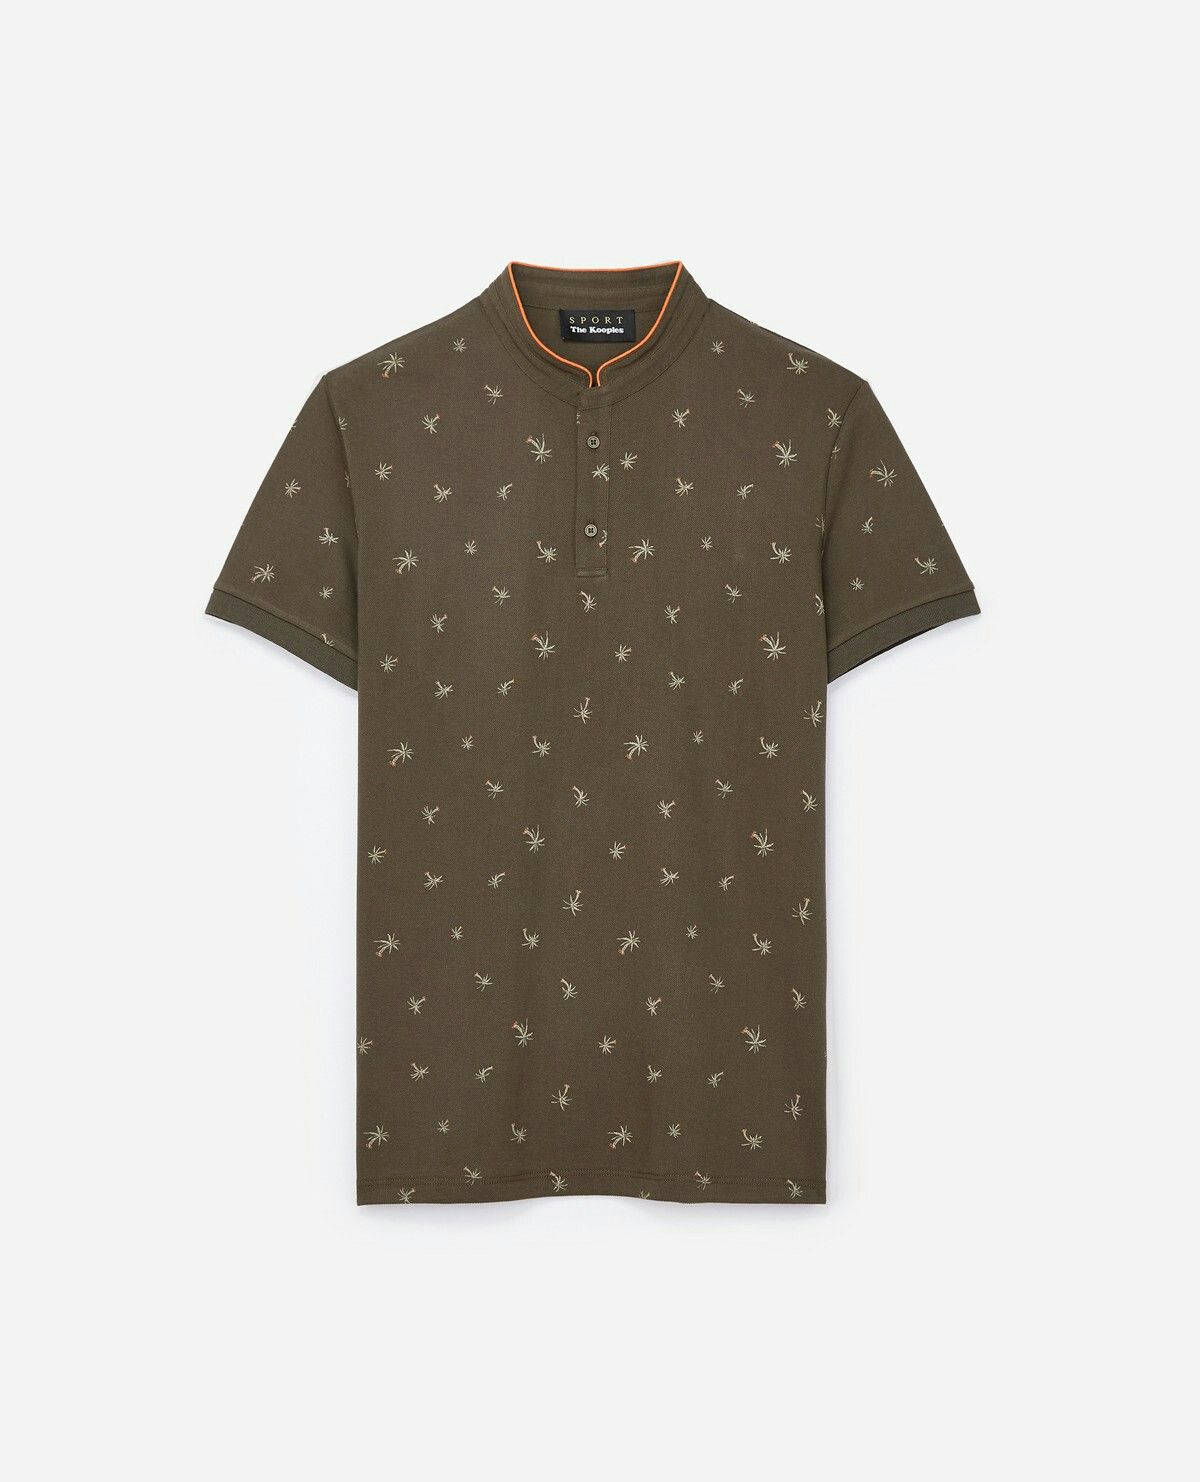 magasin en ligne 3c8eb d400e Pin by Gavriliu Diana on The kooples in 2019 | Mens clothing ...